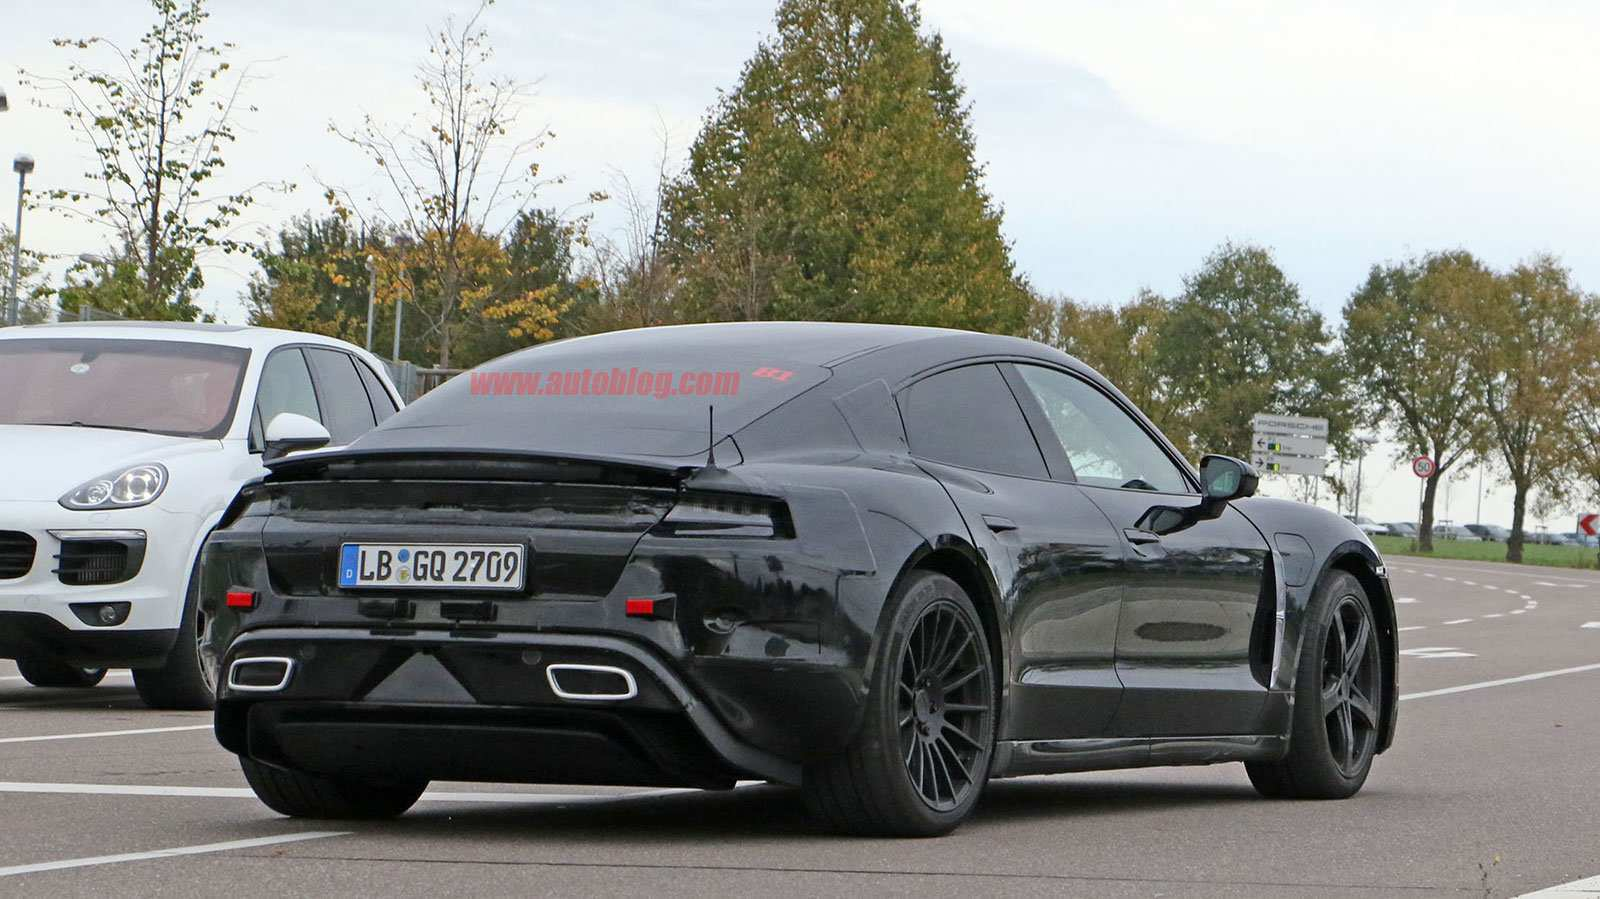 41 Best Review 2020 Porsche Mission E Electric Sedan Spied Testing Alongside Teslas Style for 2020 Porsche Mission E Electric Sedan Spied Testing Alongside Teslas